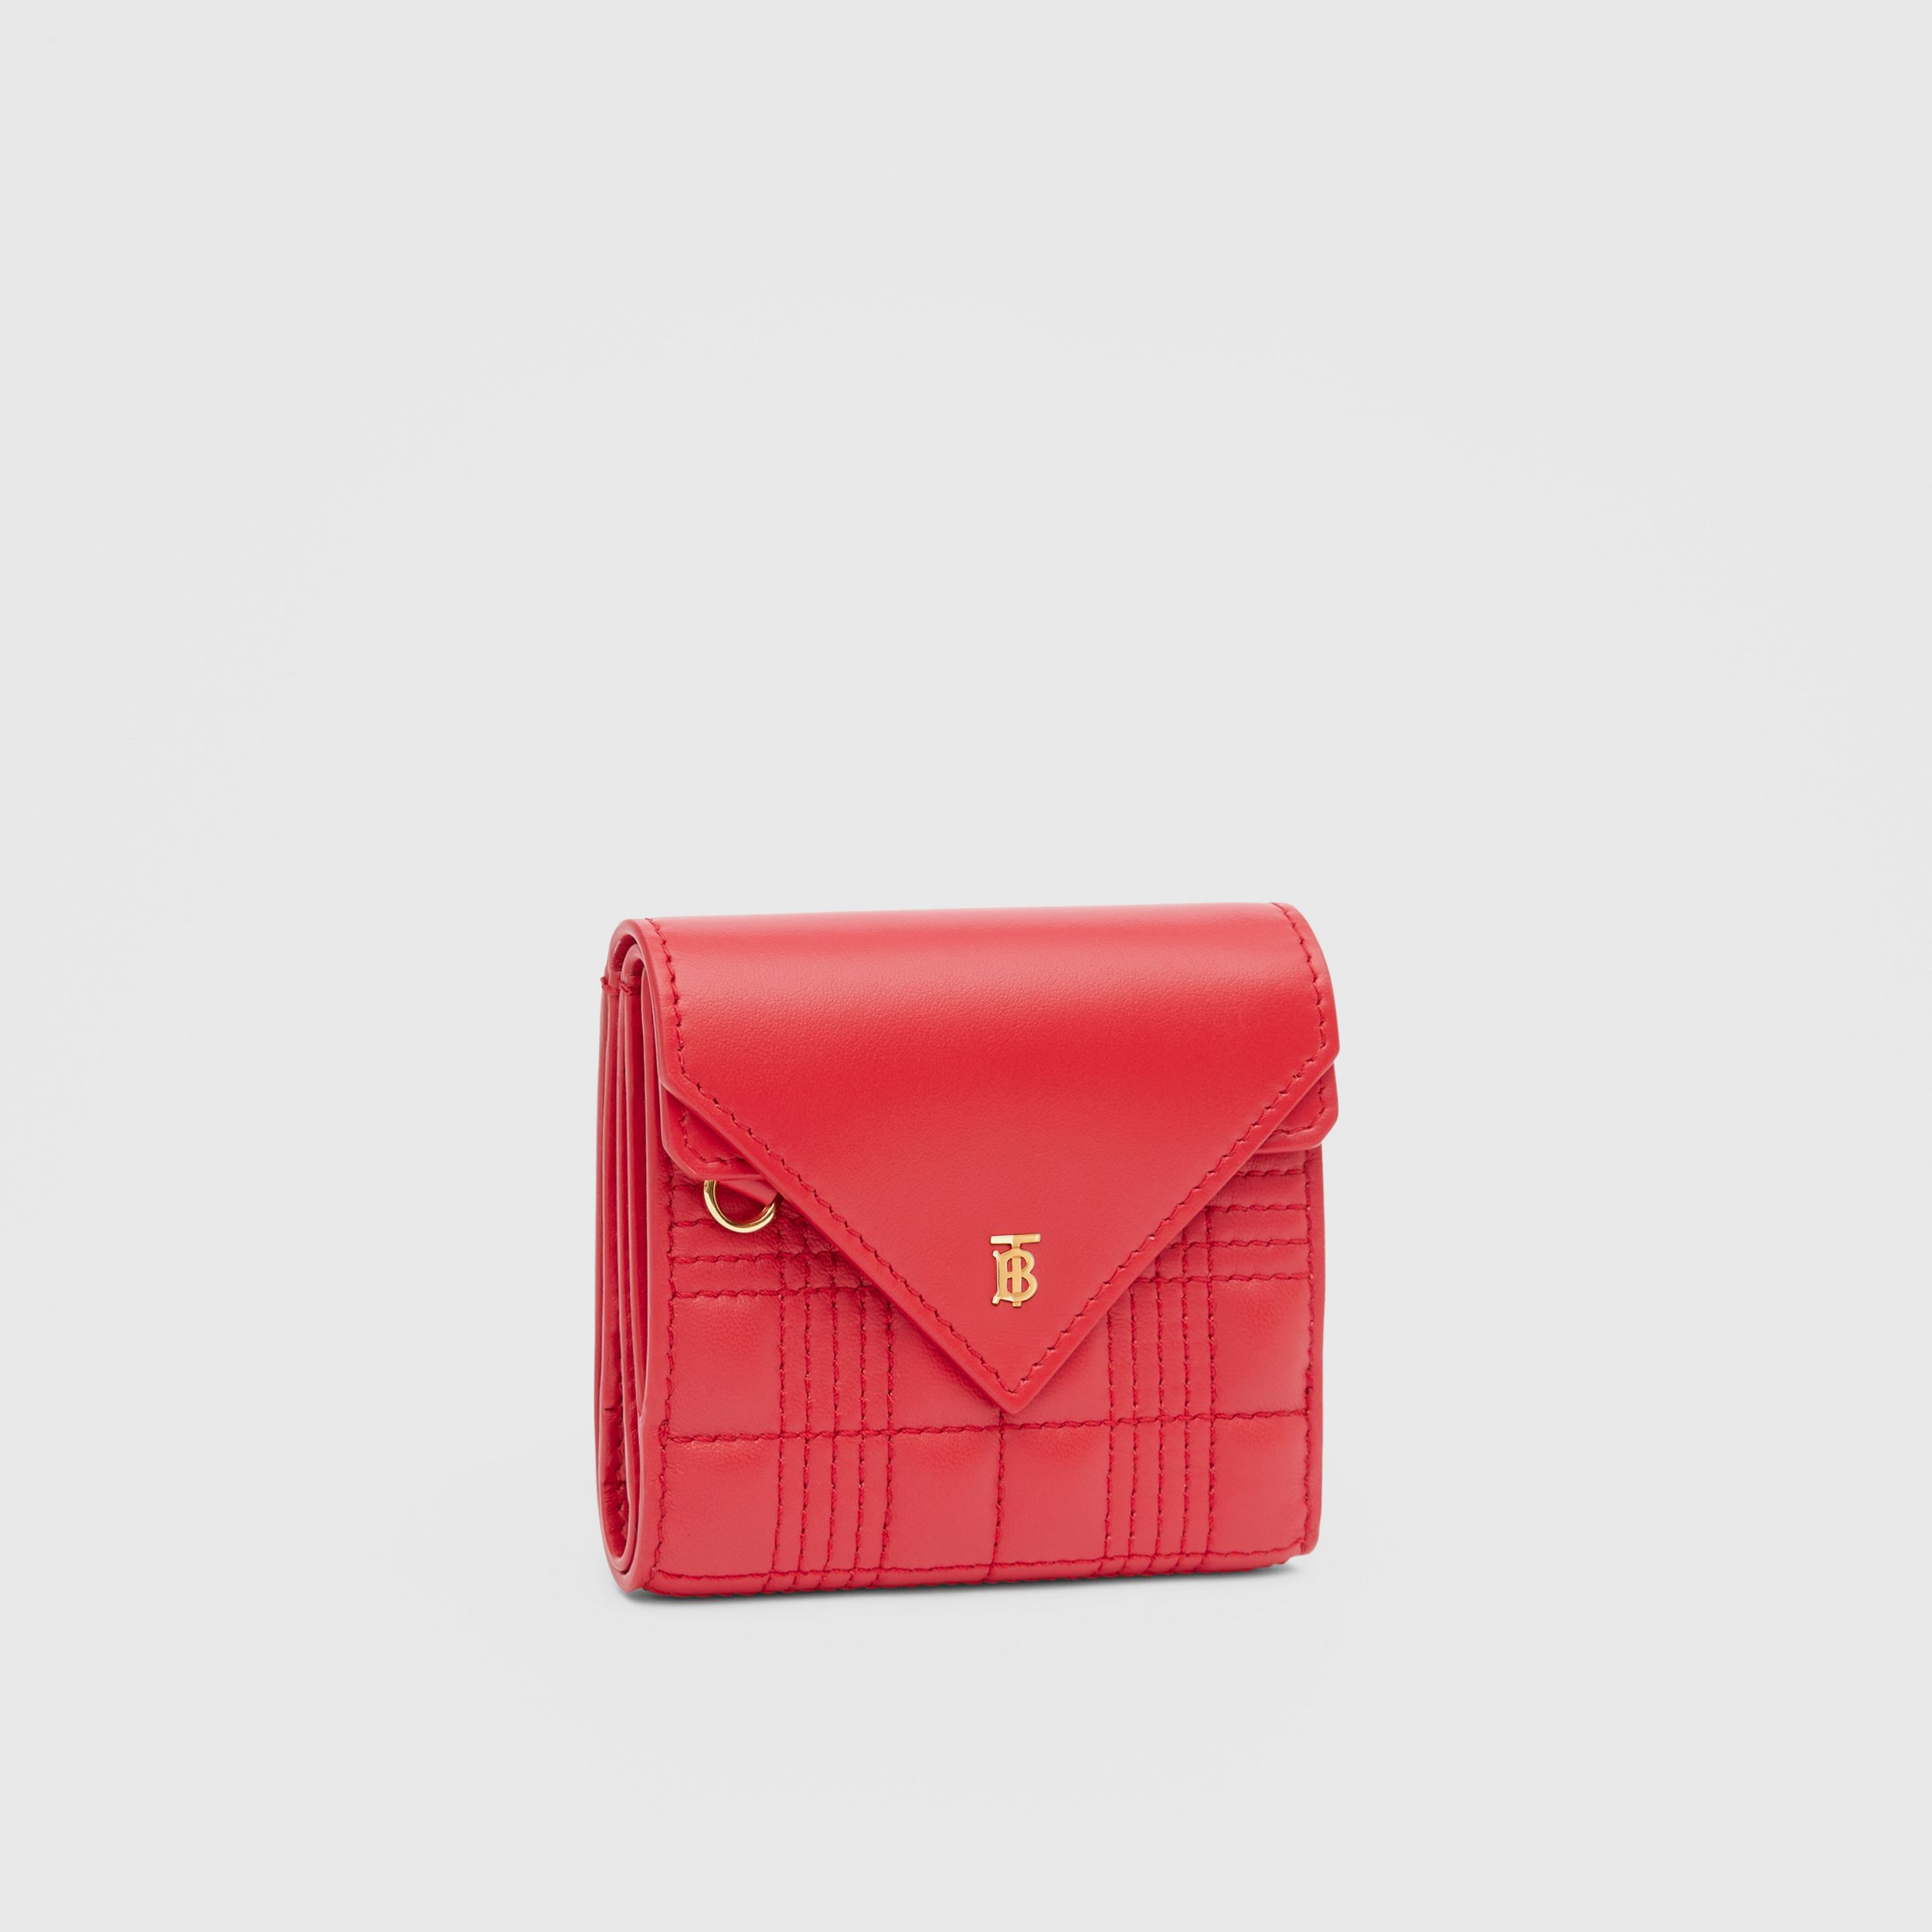 Quilted Lambskin Folding Wallet in Bright Red - Women | Burberry - 4